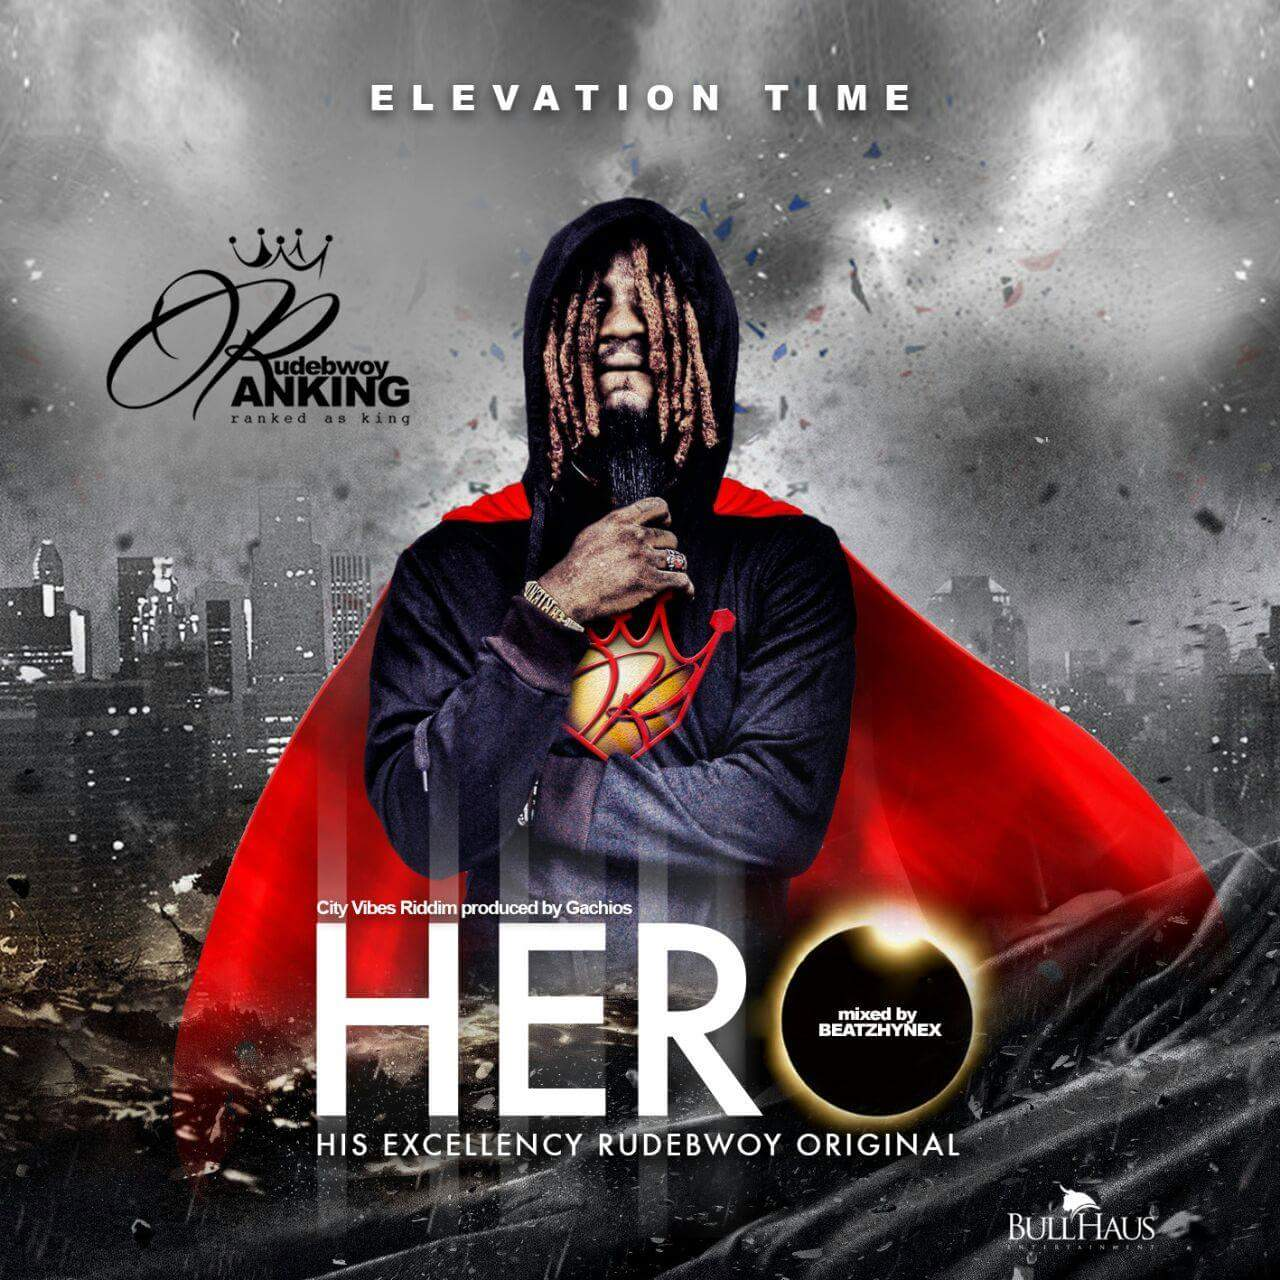 RudeBwoy Ranking - Hero ( City Vibes Riddim)